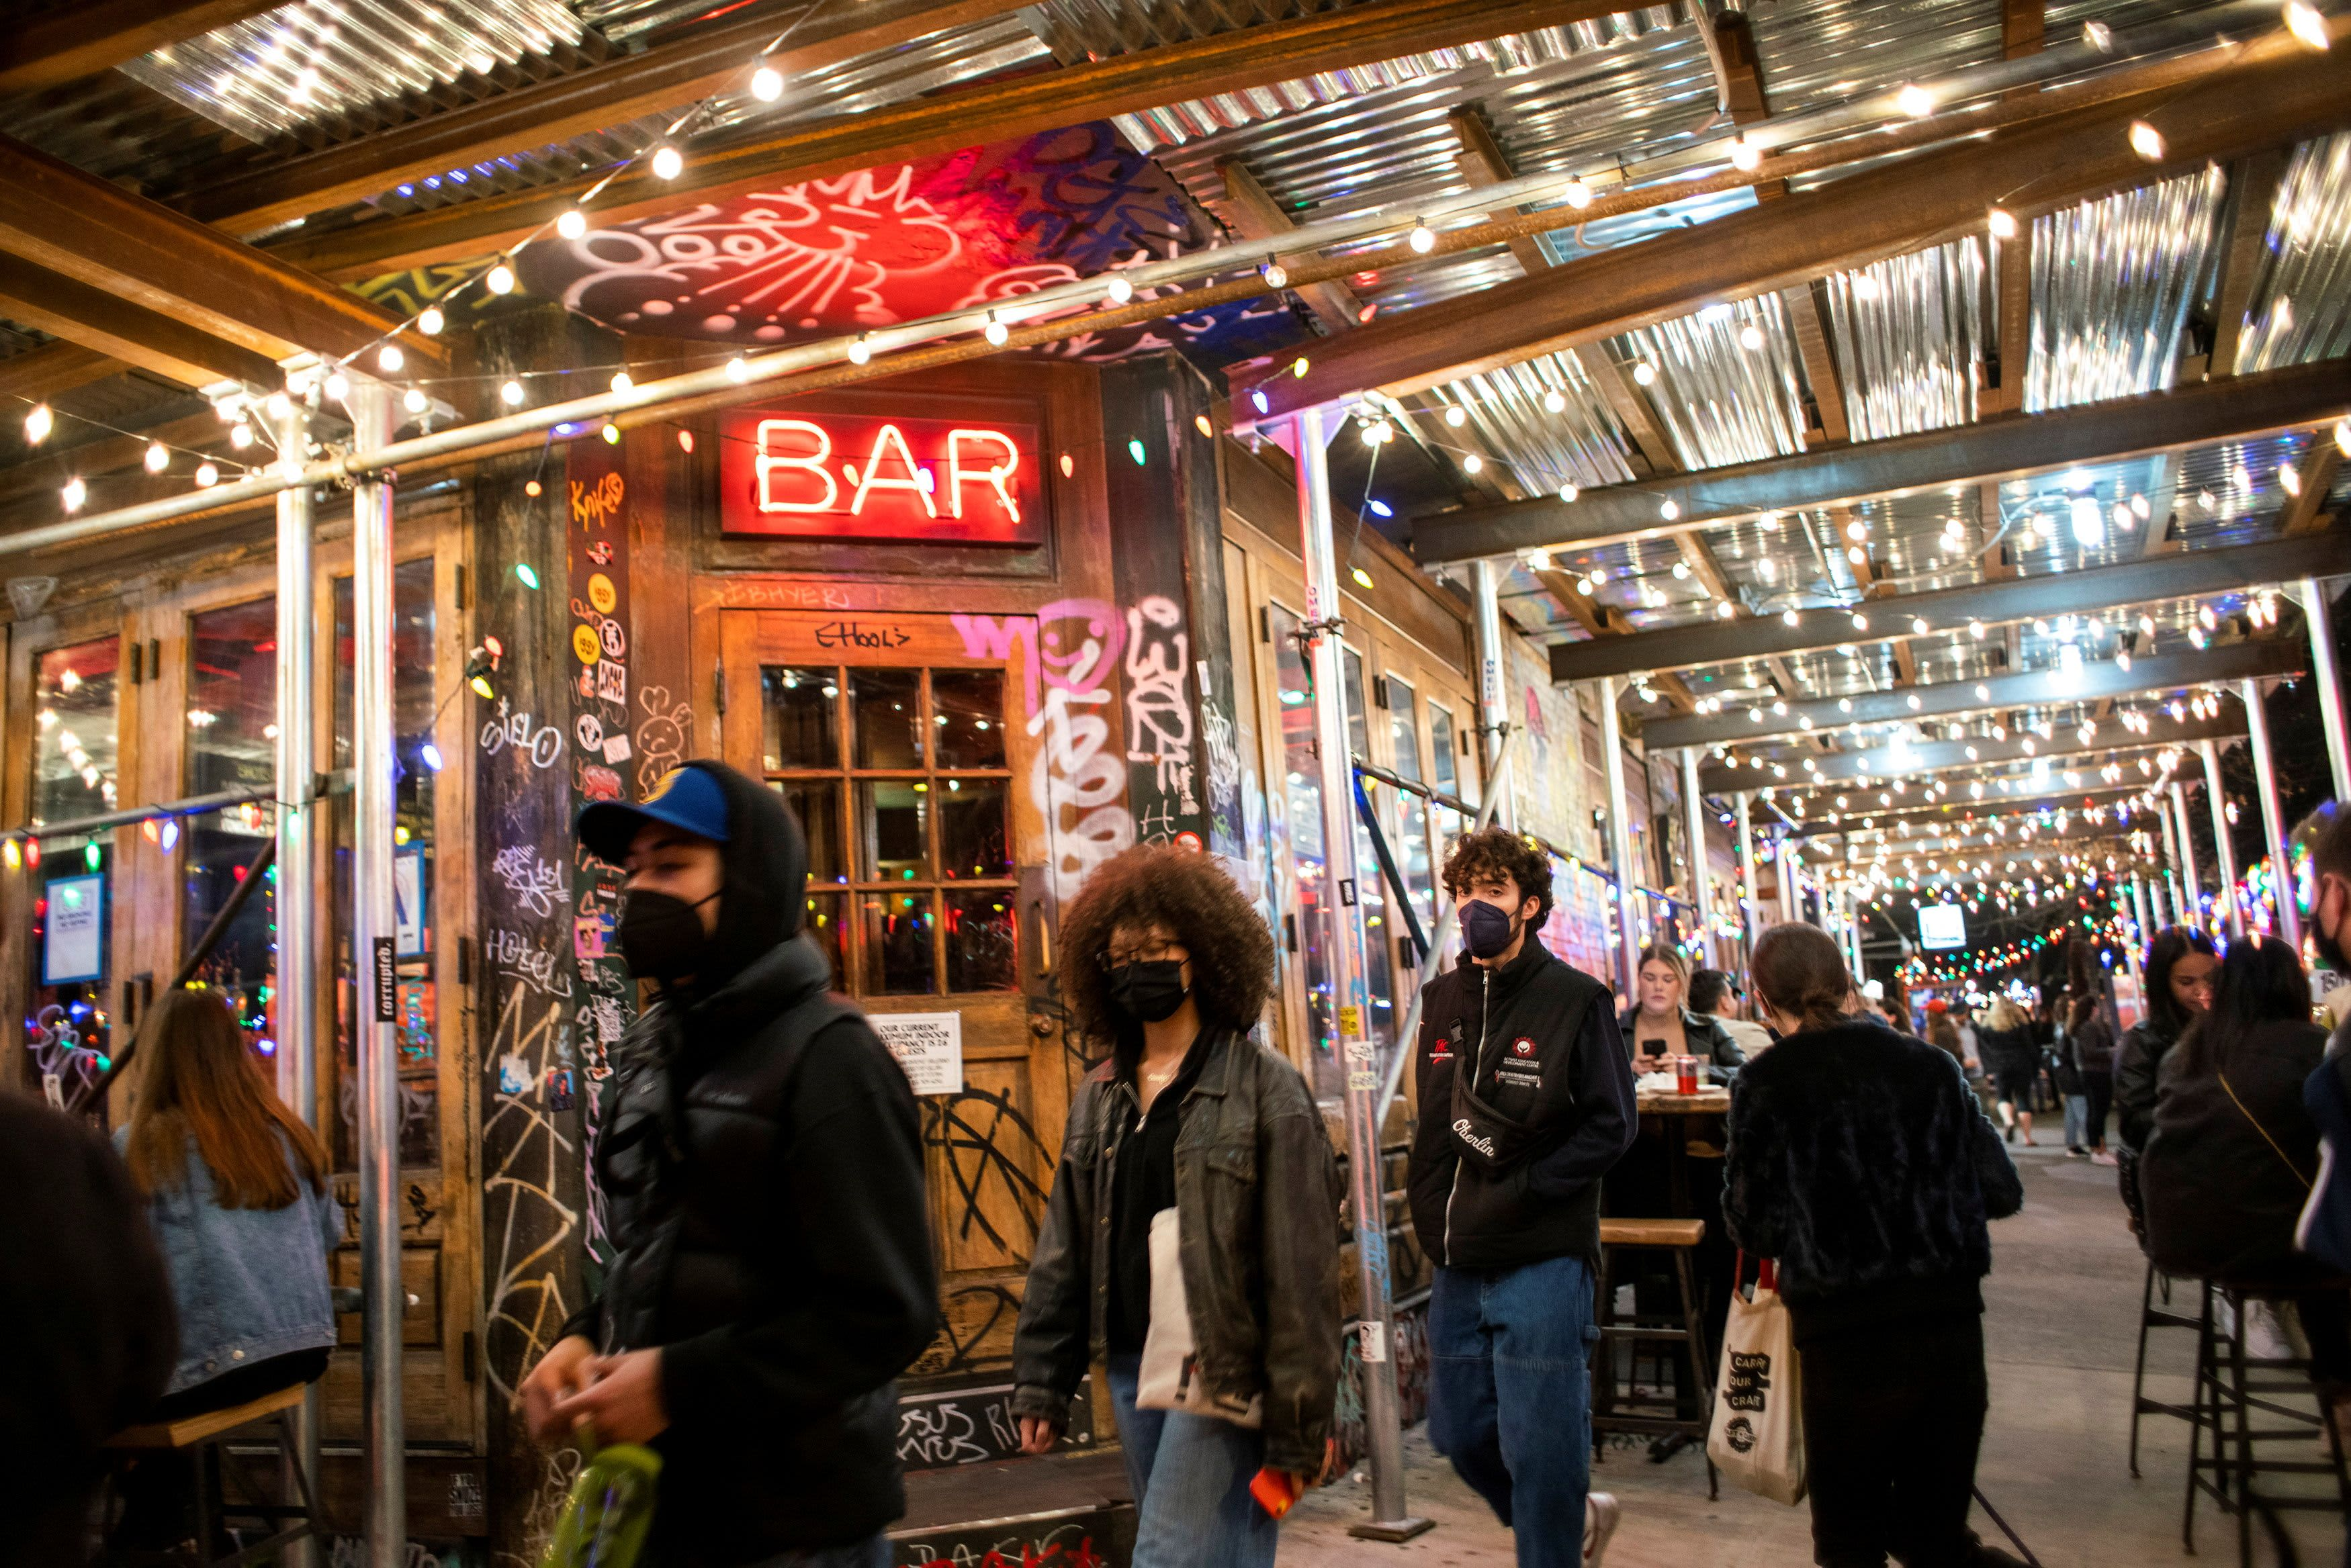 New York to end restaurant curfew, allow bar seating in NYC starting May as Covid cases drop